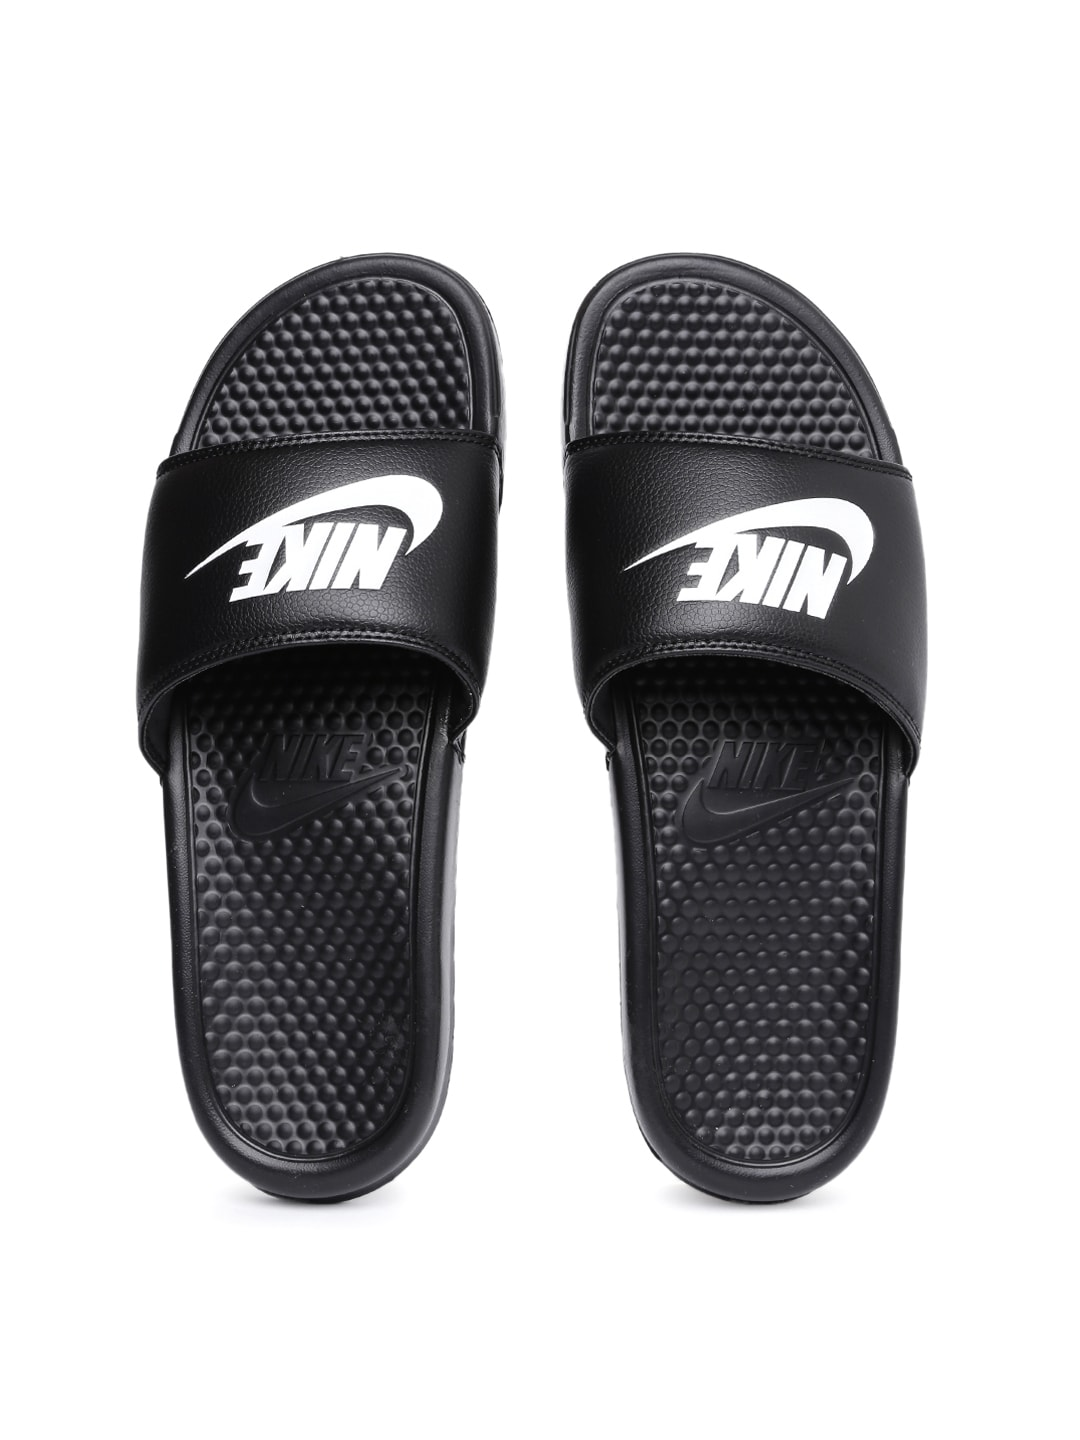 Nike Flip-Flops - Buy Nike Flip-Flops for Men Women Online  136a02479